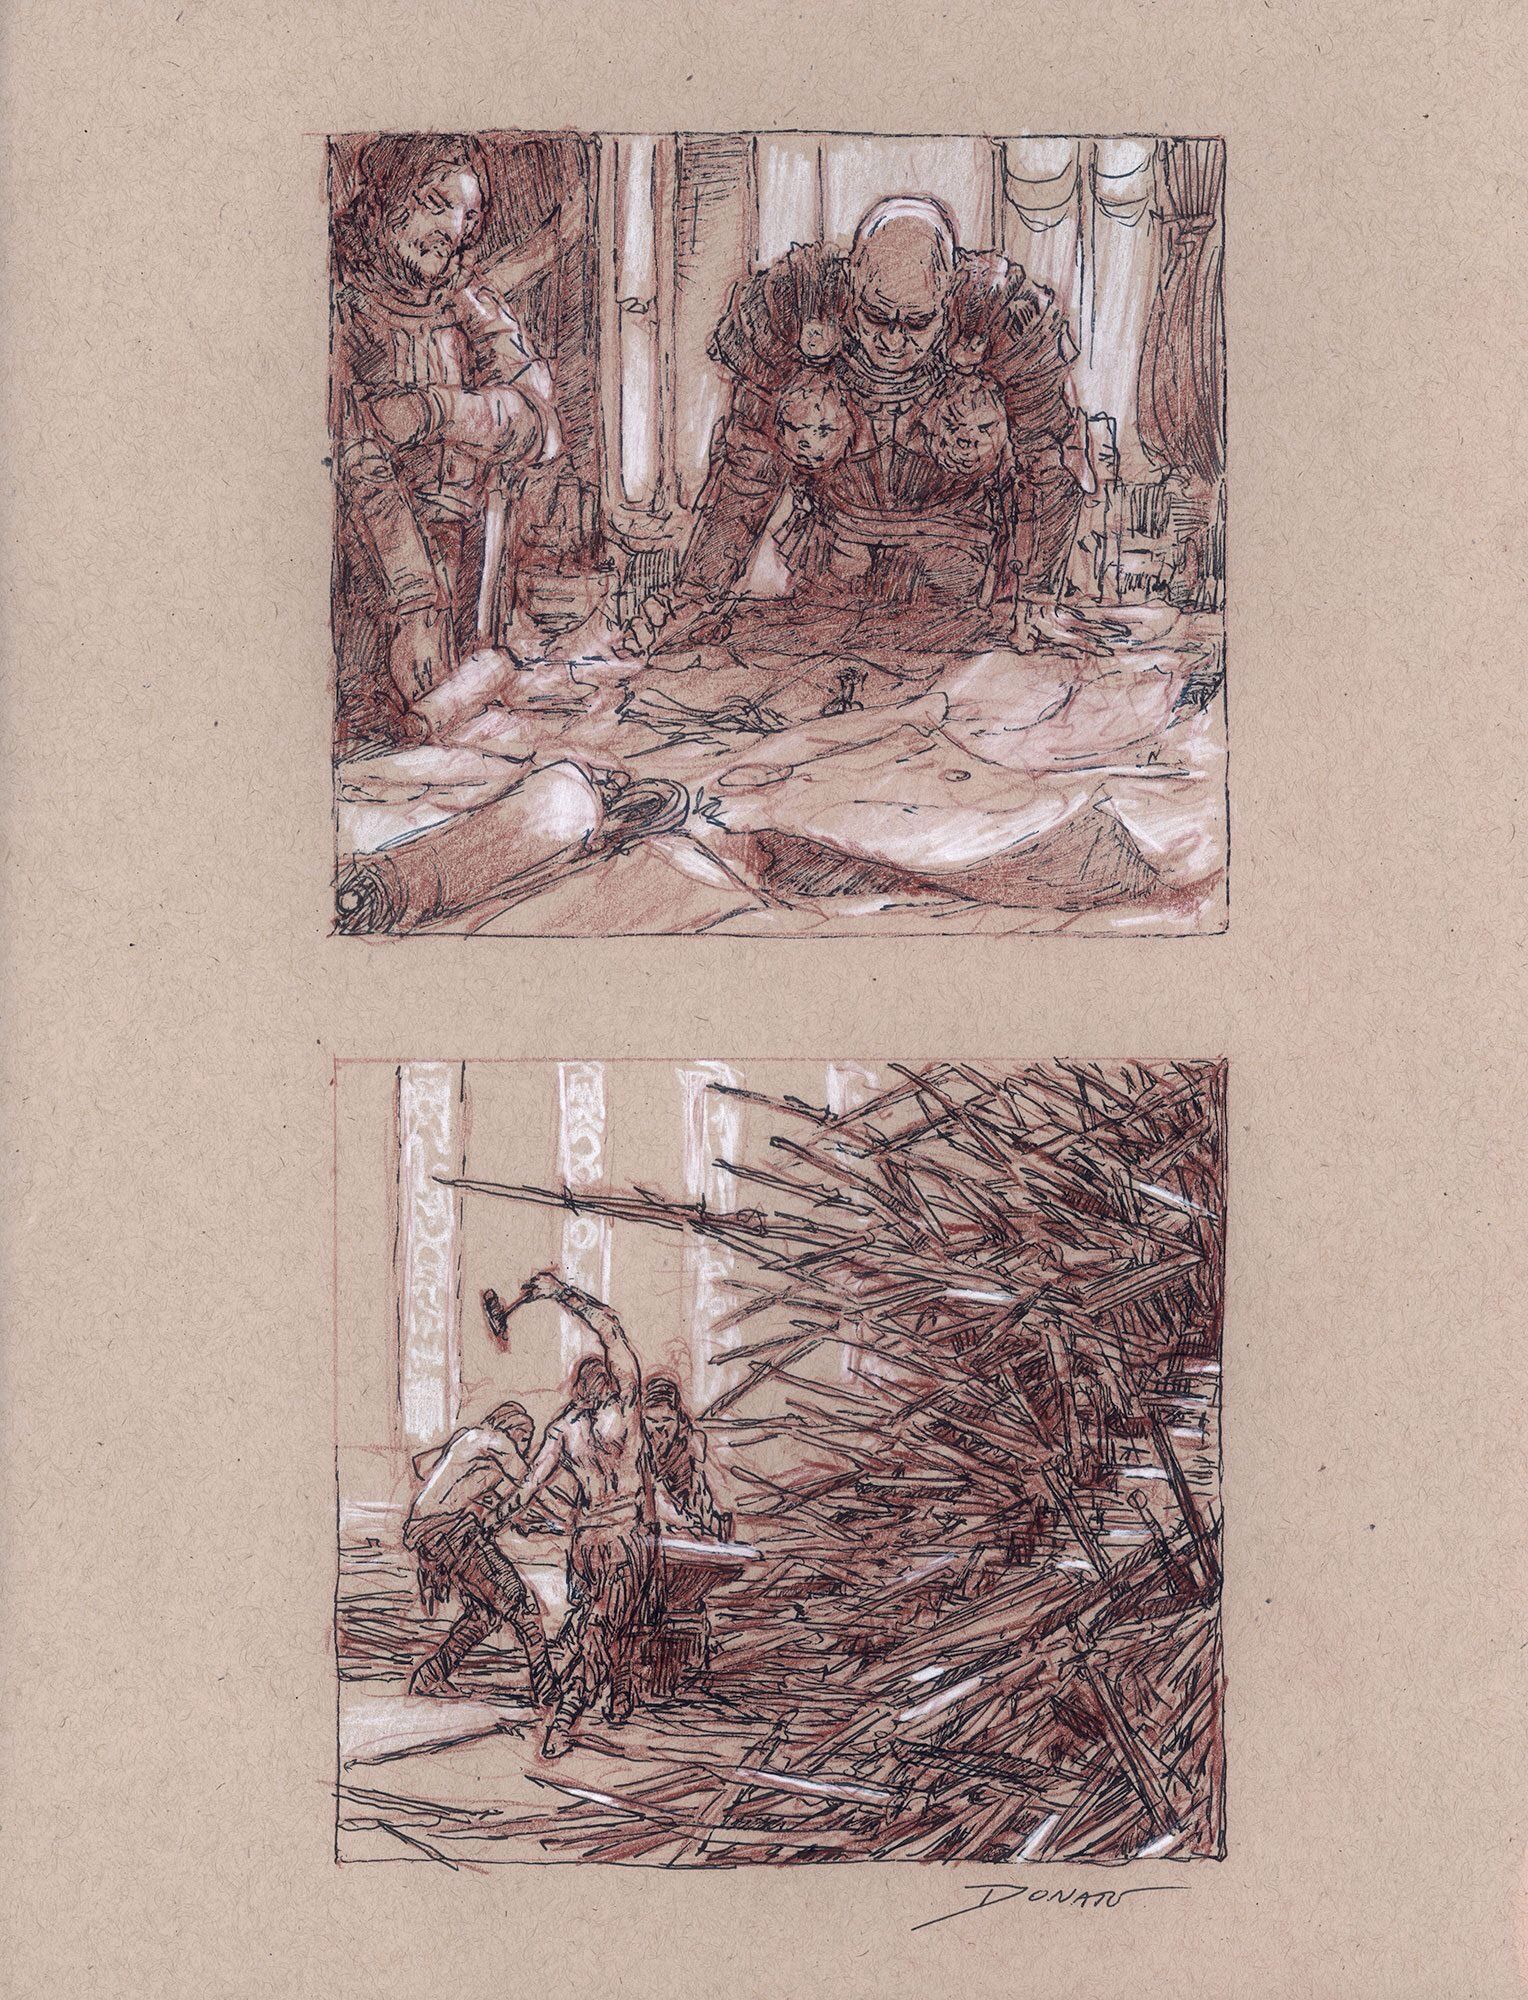 fire and ice sketches donato giancola donato giancola fire and ice sketches donato giancola